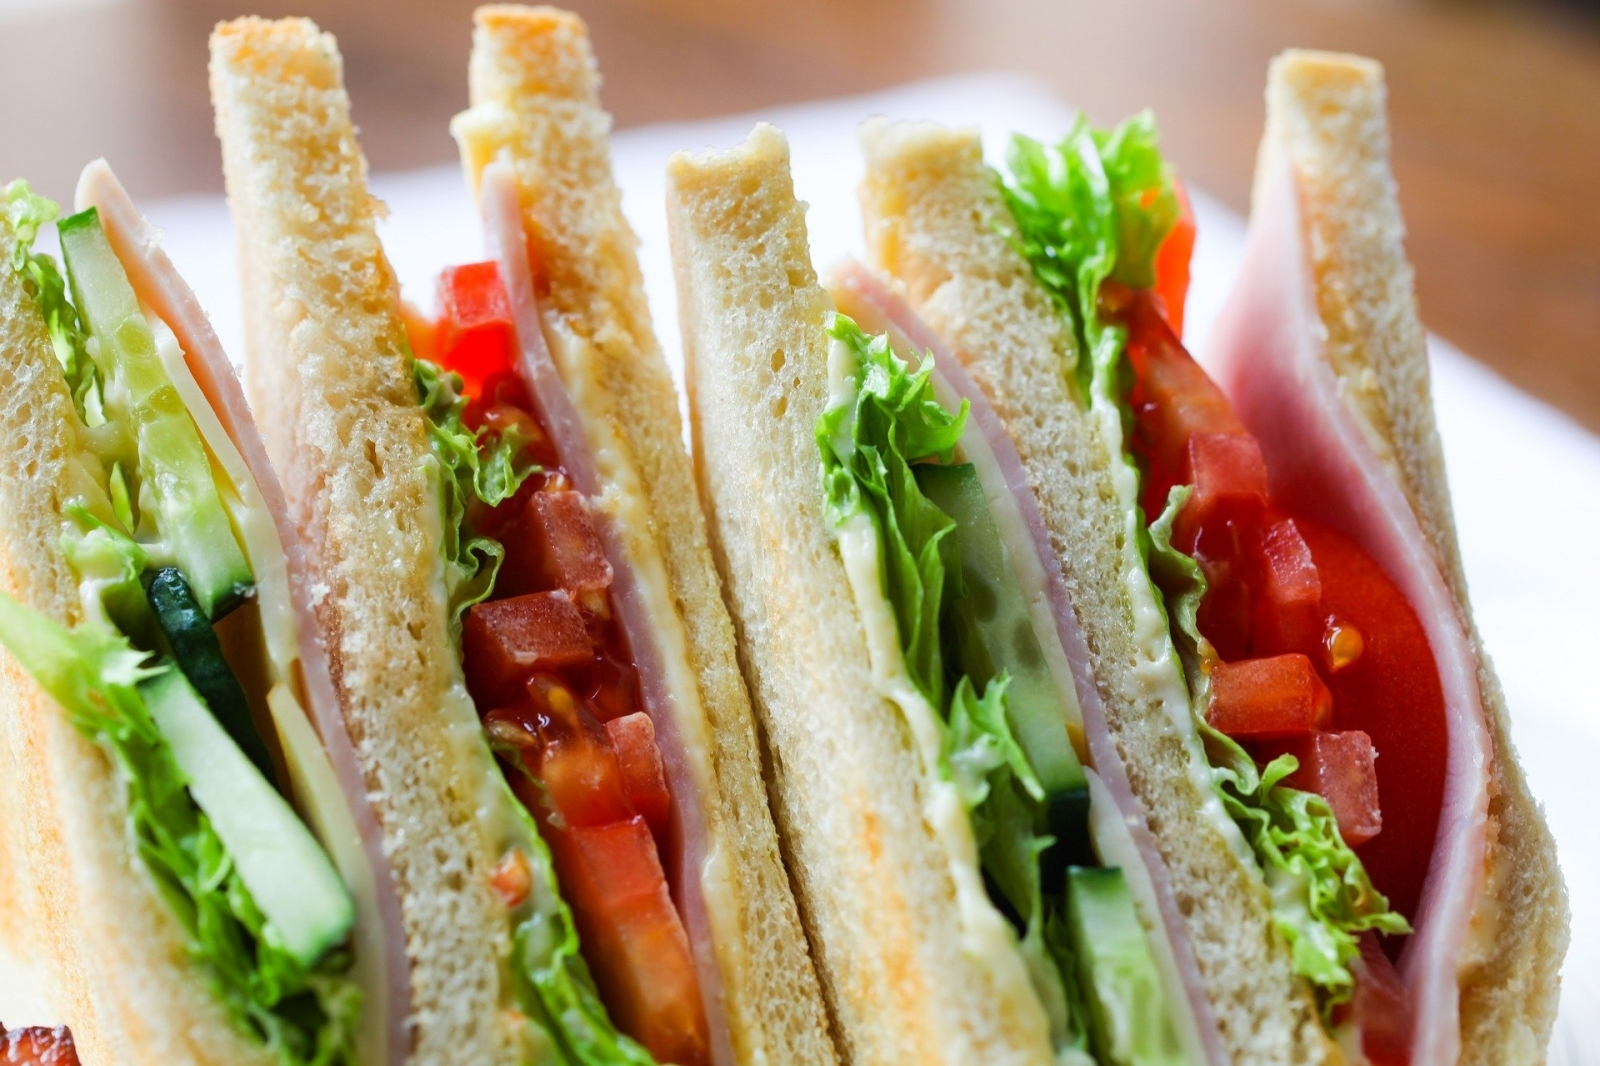 UK sandwich consumption produces same carbon dioxide as 'millions of cars'